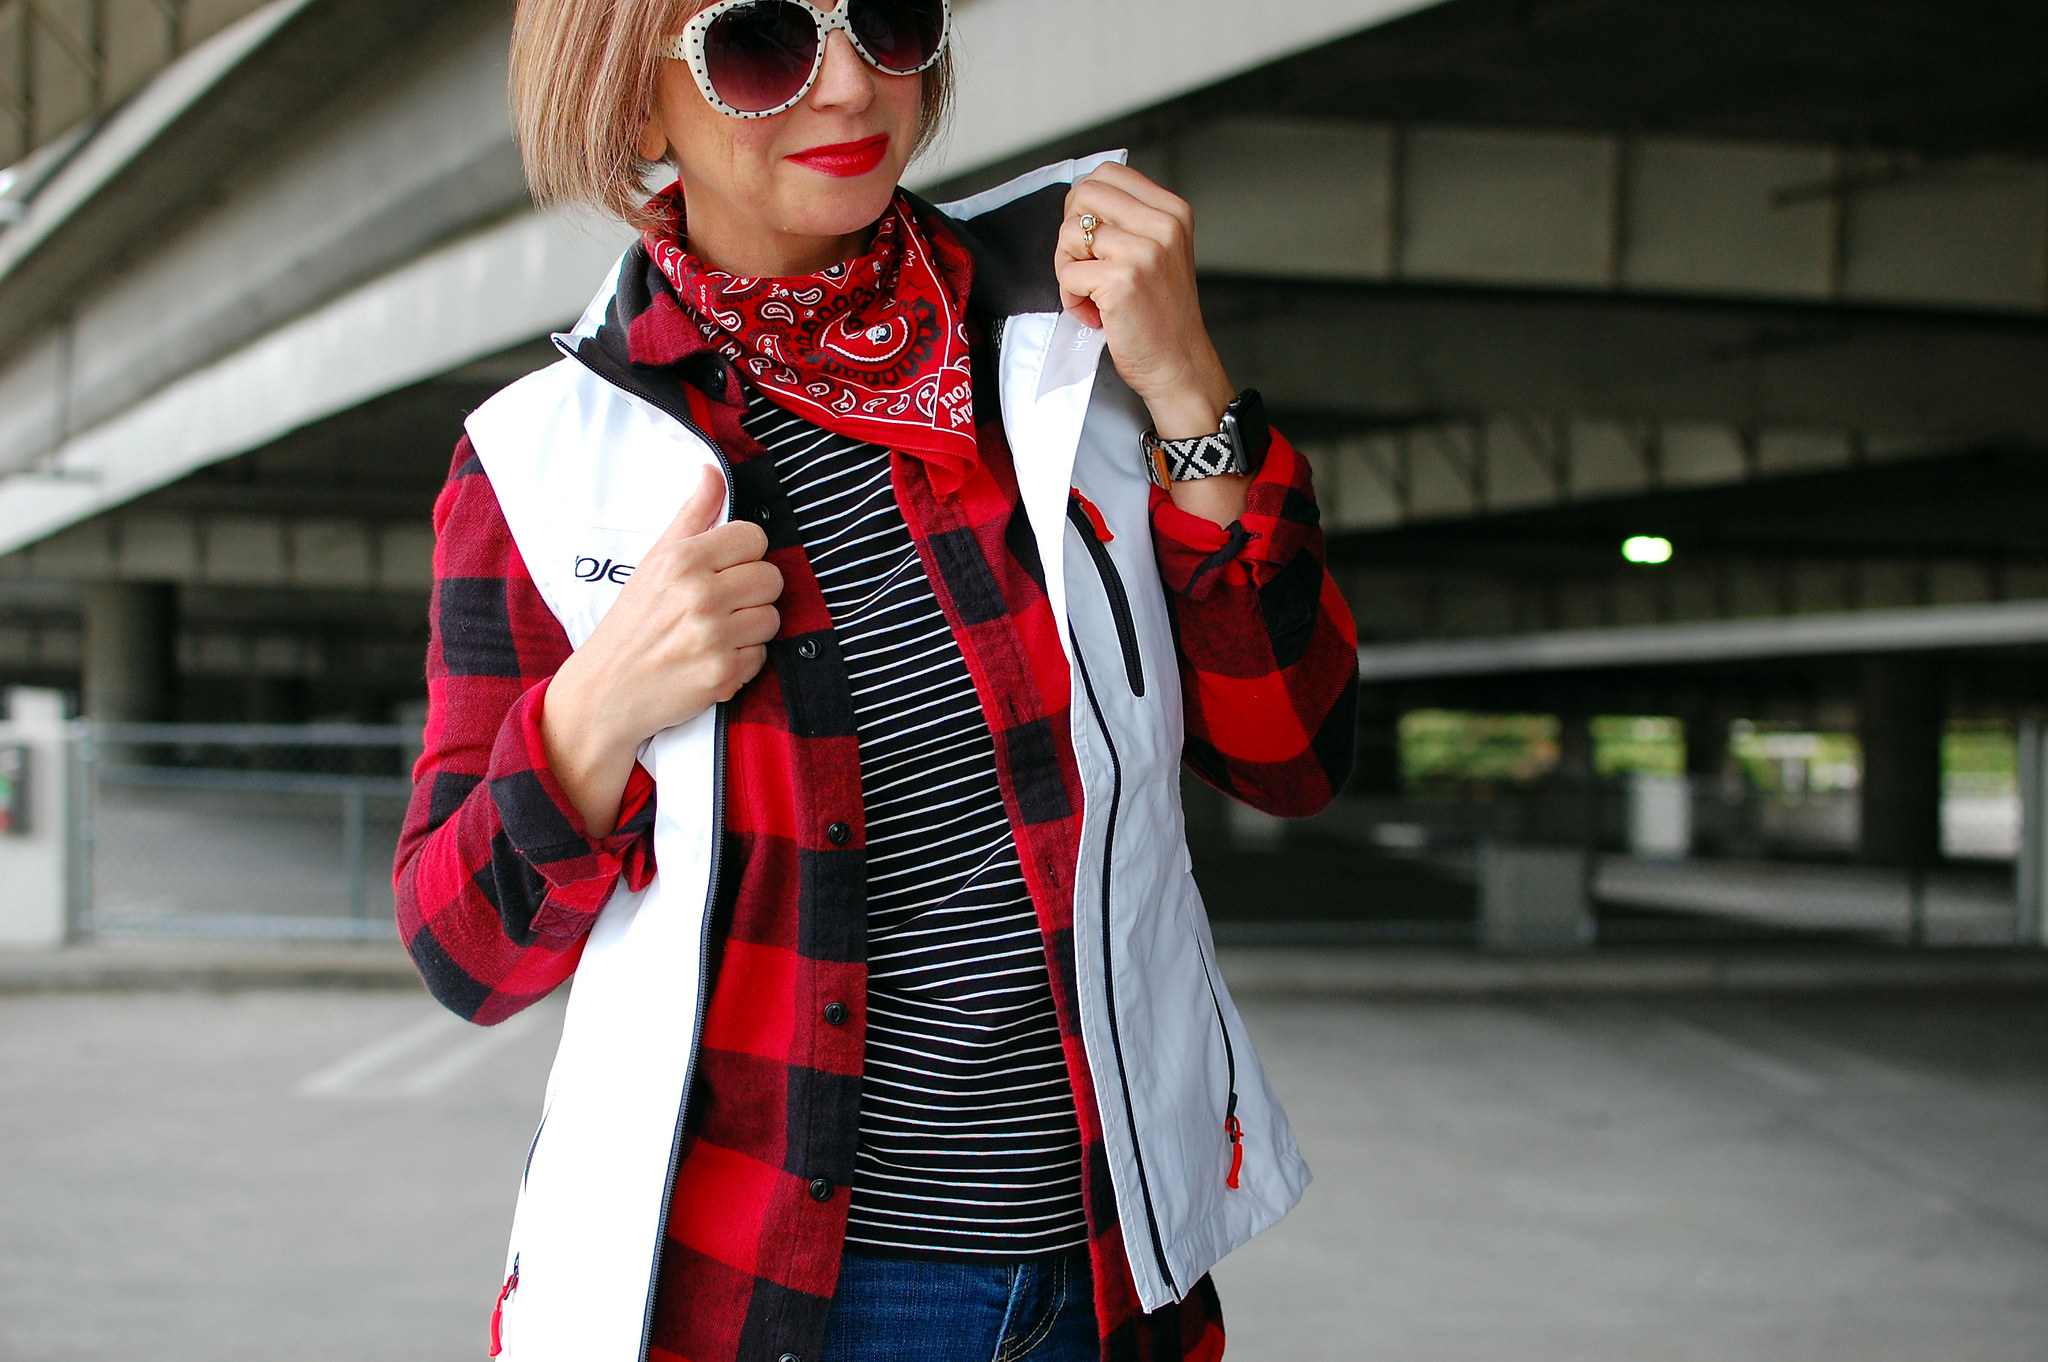 bandana flannel vest pattern mix ootd photographer whatiwore2day